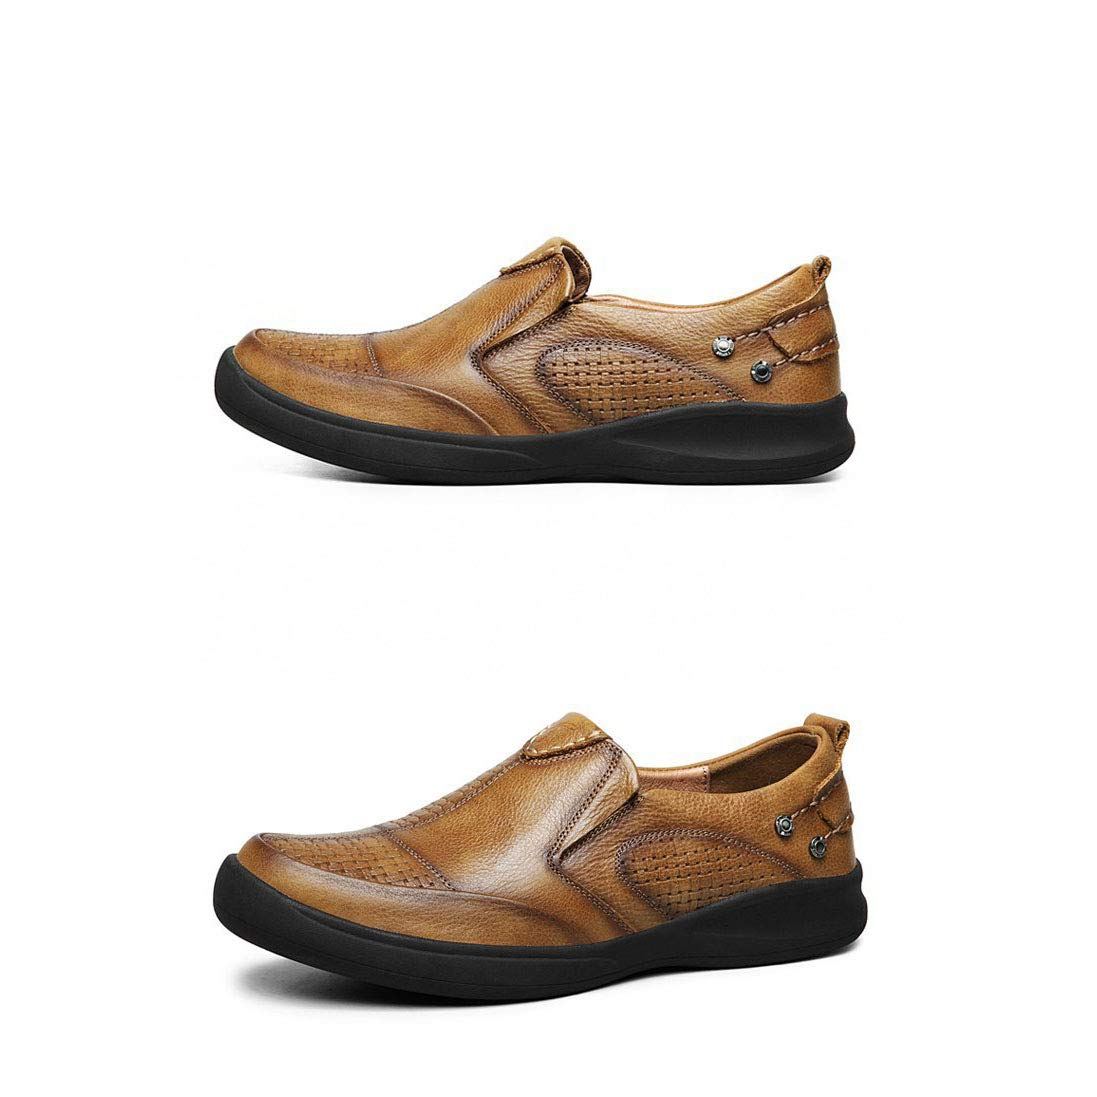 Mens Shoes Leather Shoes Loafers Shoes Flat Loafers Mens Casual Shoes Outdoor Breathable Moccasins Slippers